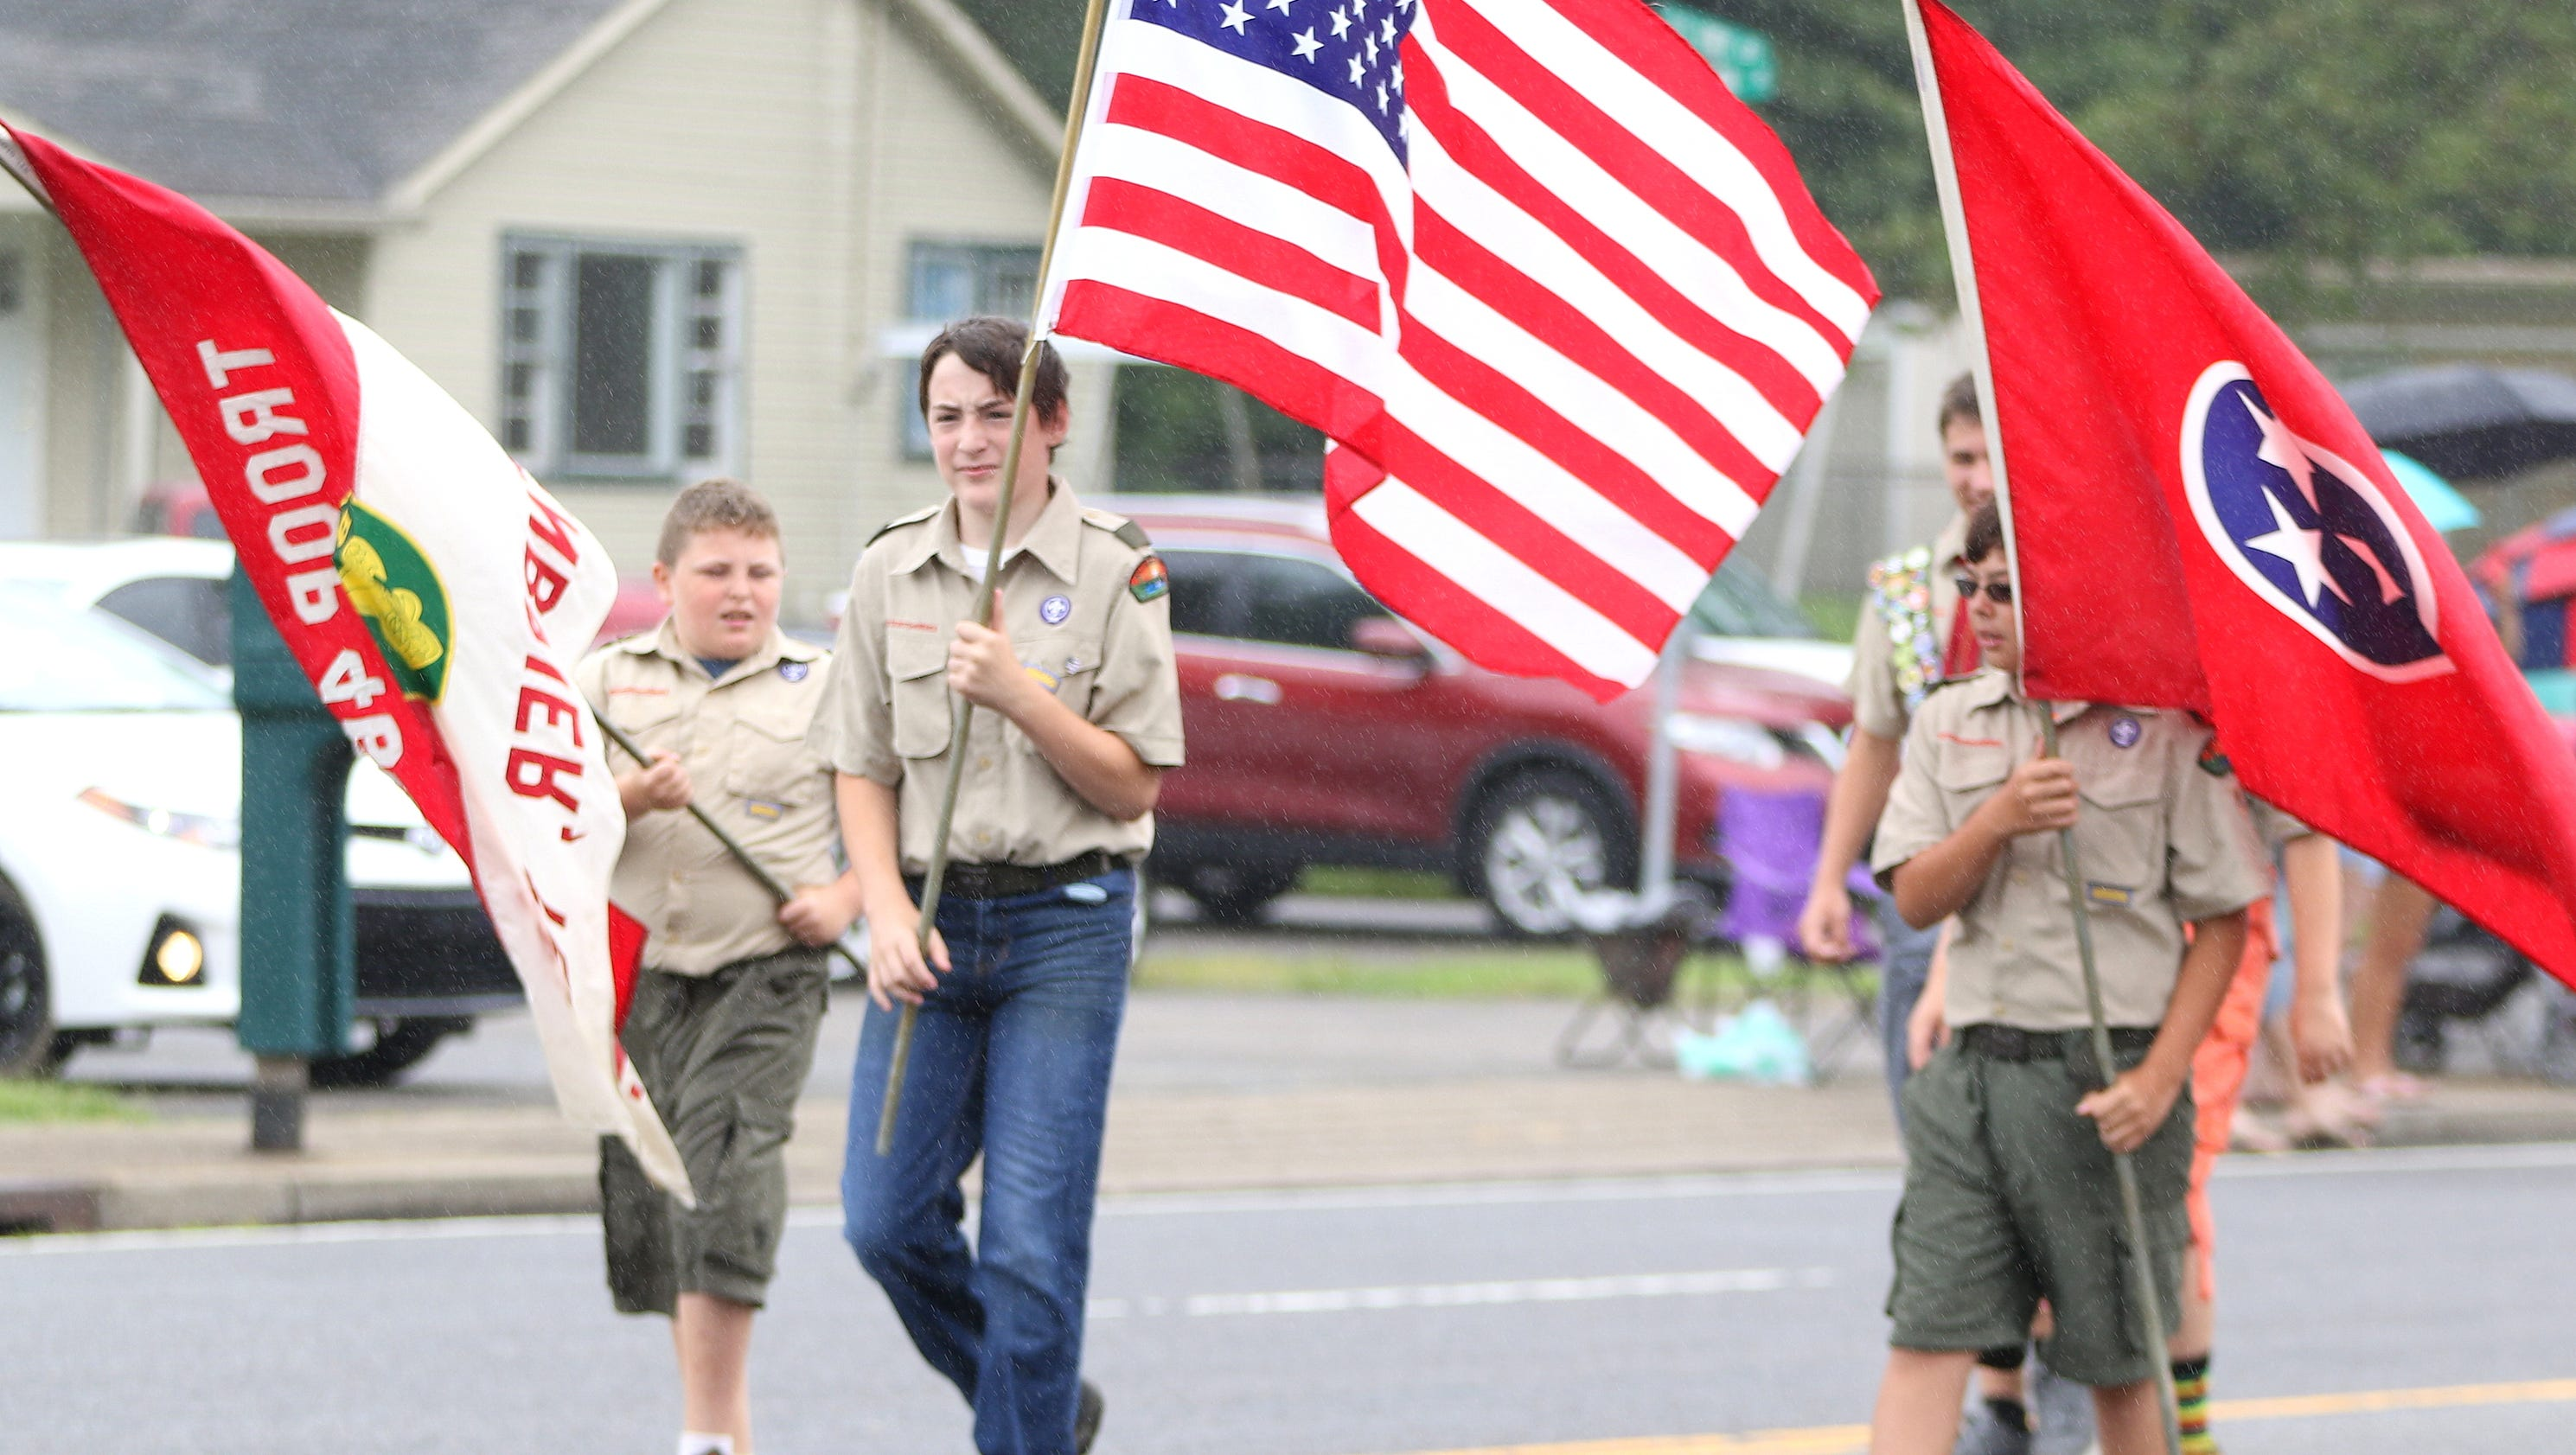 Forum on this topic: The Boy Scouts Will Now Allow Girls , the-boy-scouts-will-now-allow-girls/